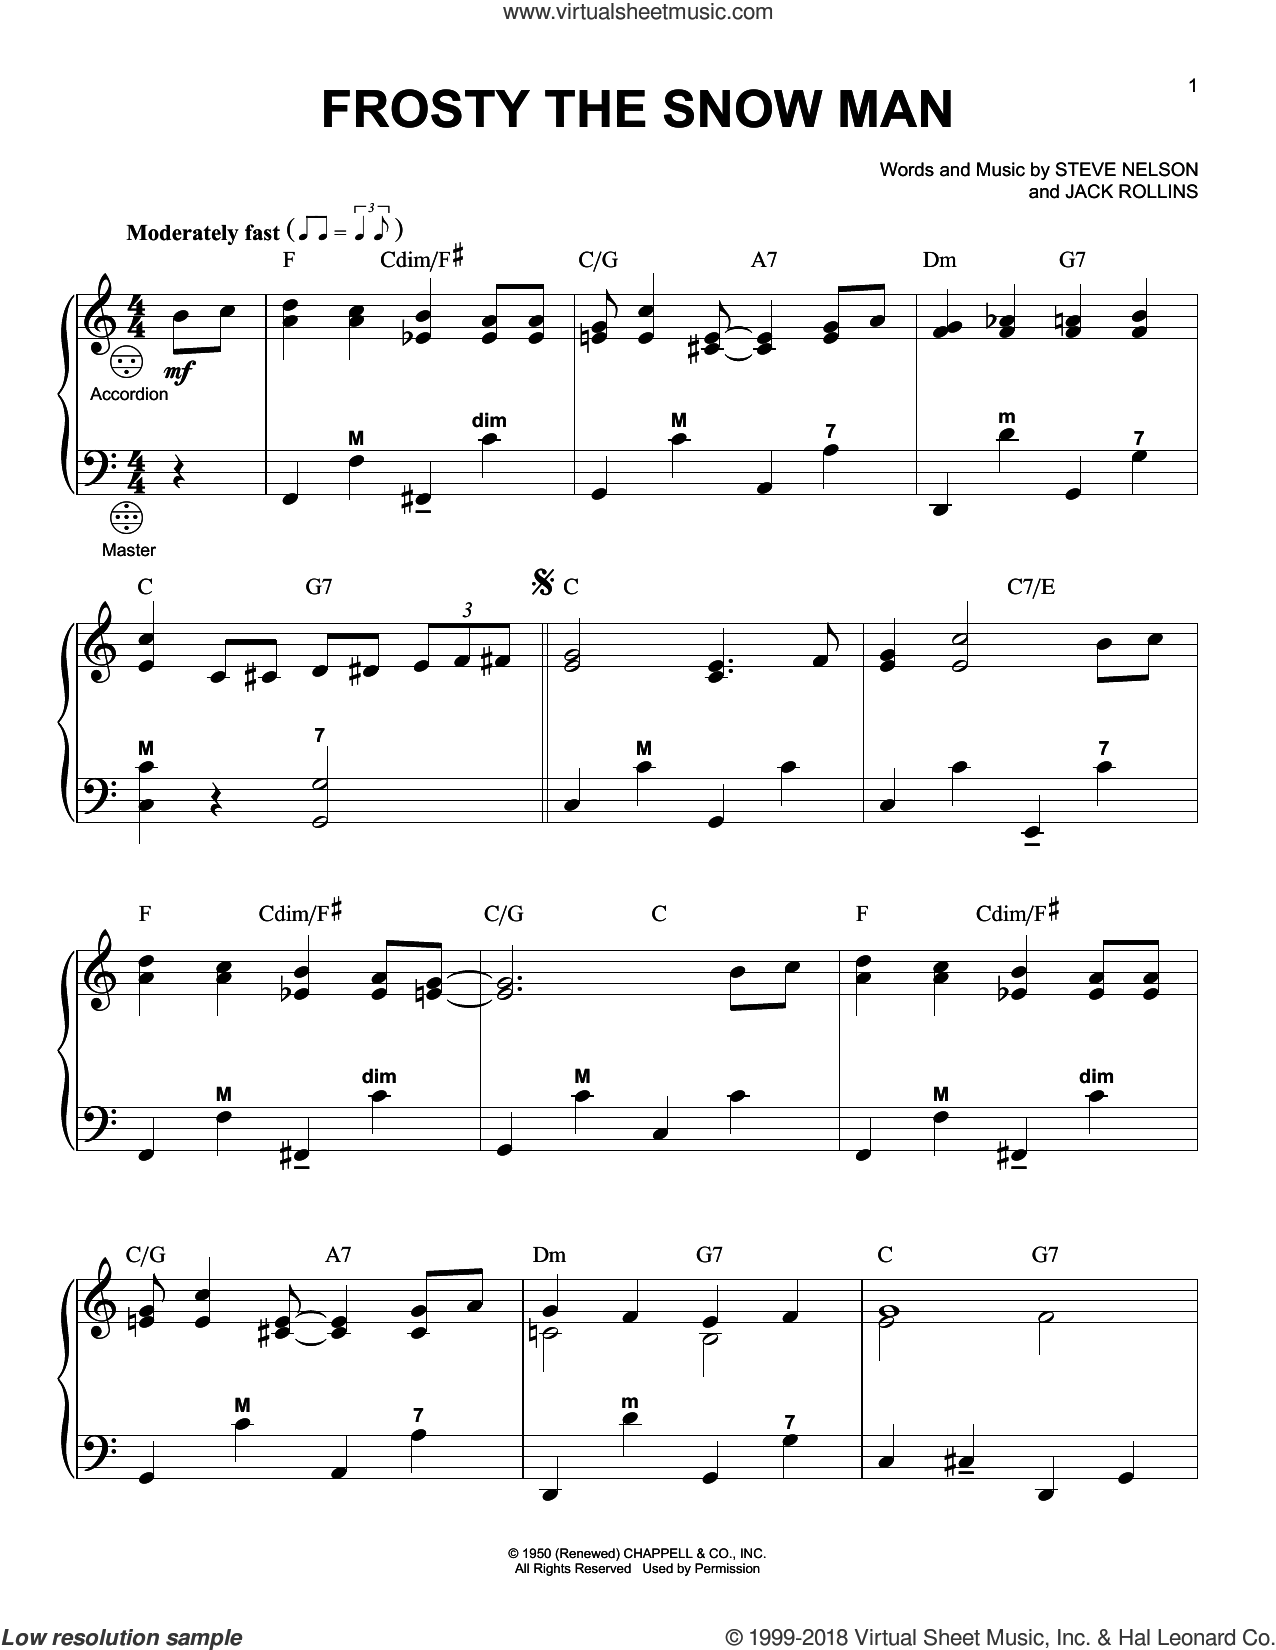 Frosty The Snow Man sheet music for accordion by Steve Nelson and Jack Rollins, intermediate skill level